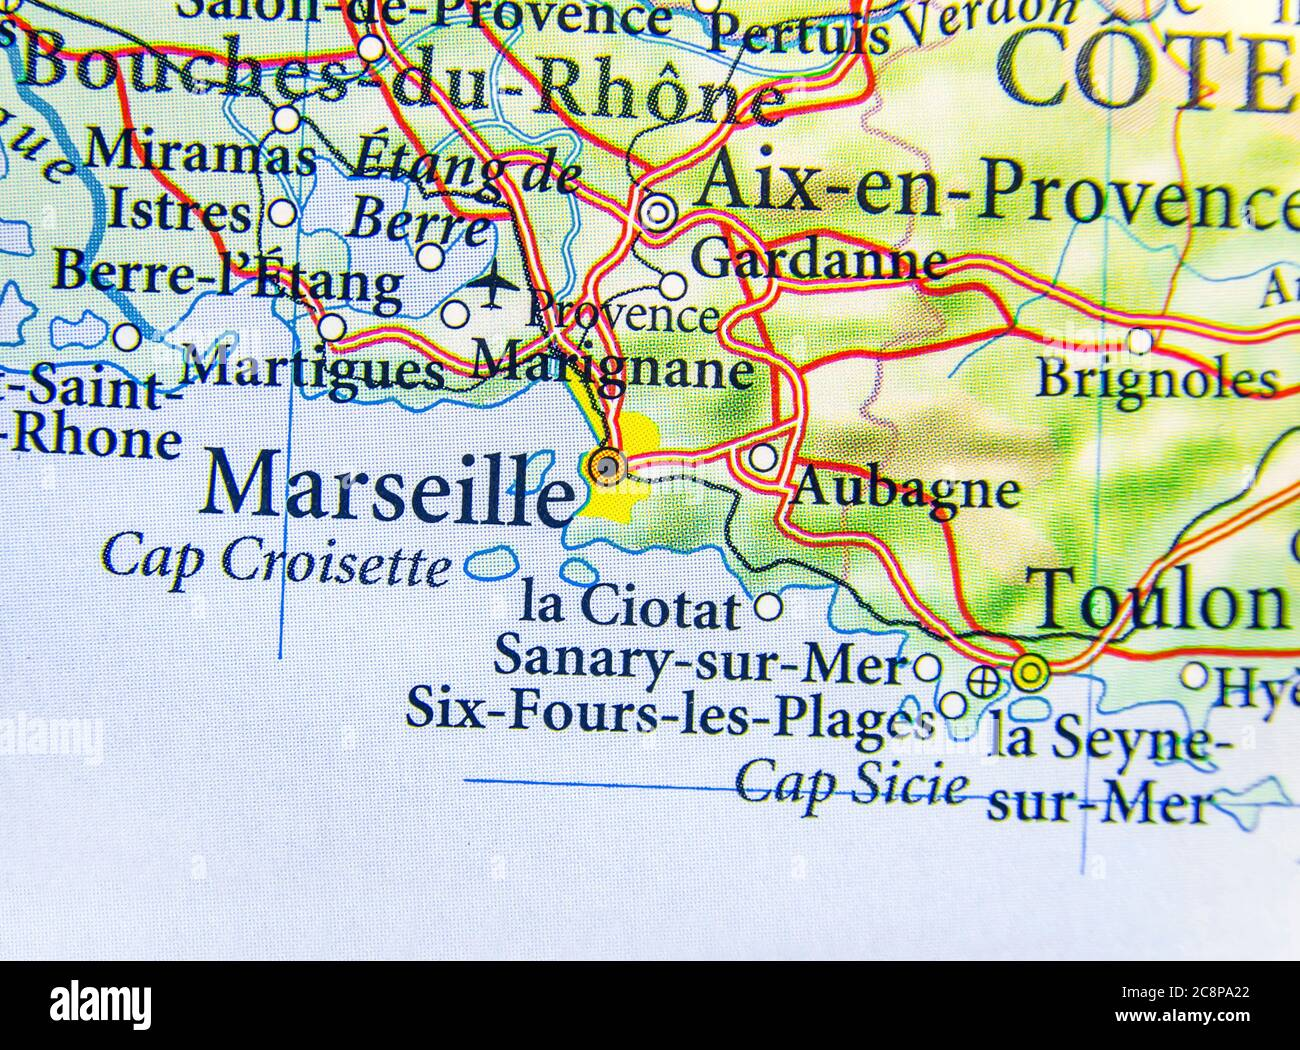 Geographic Map Of European Country France With Marseille City Stock Photo Alamy